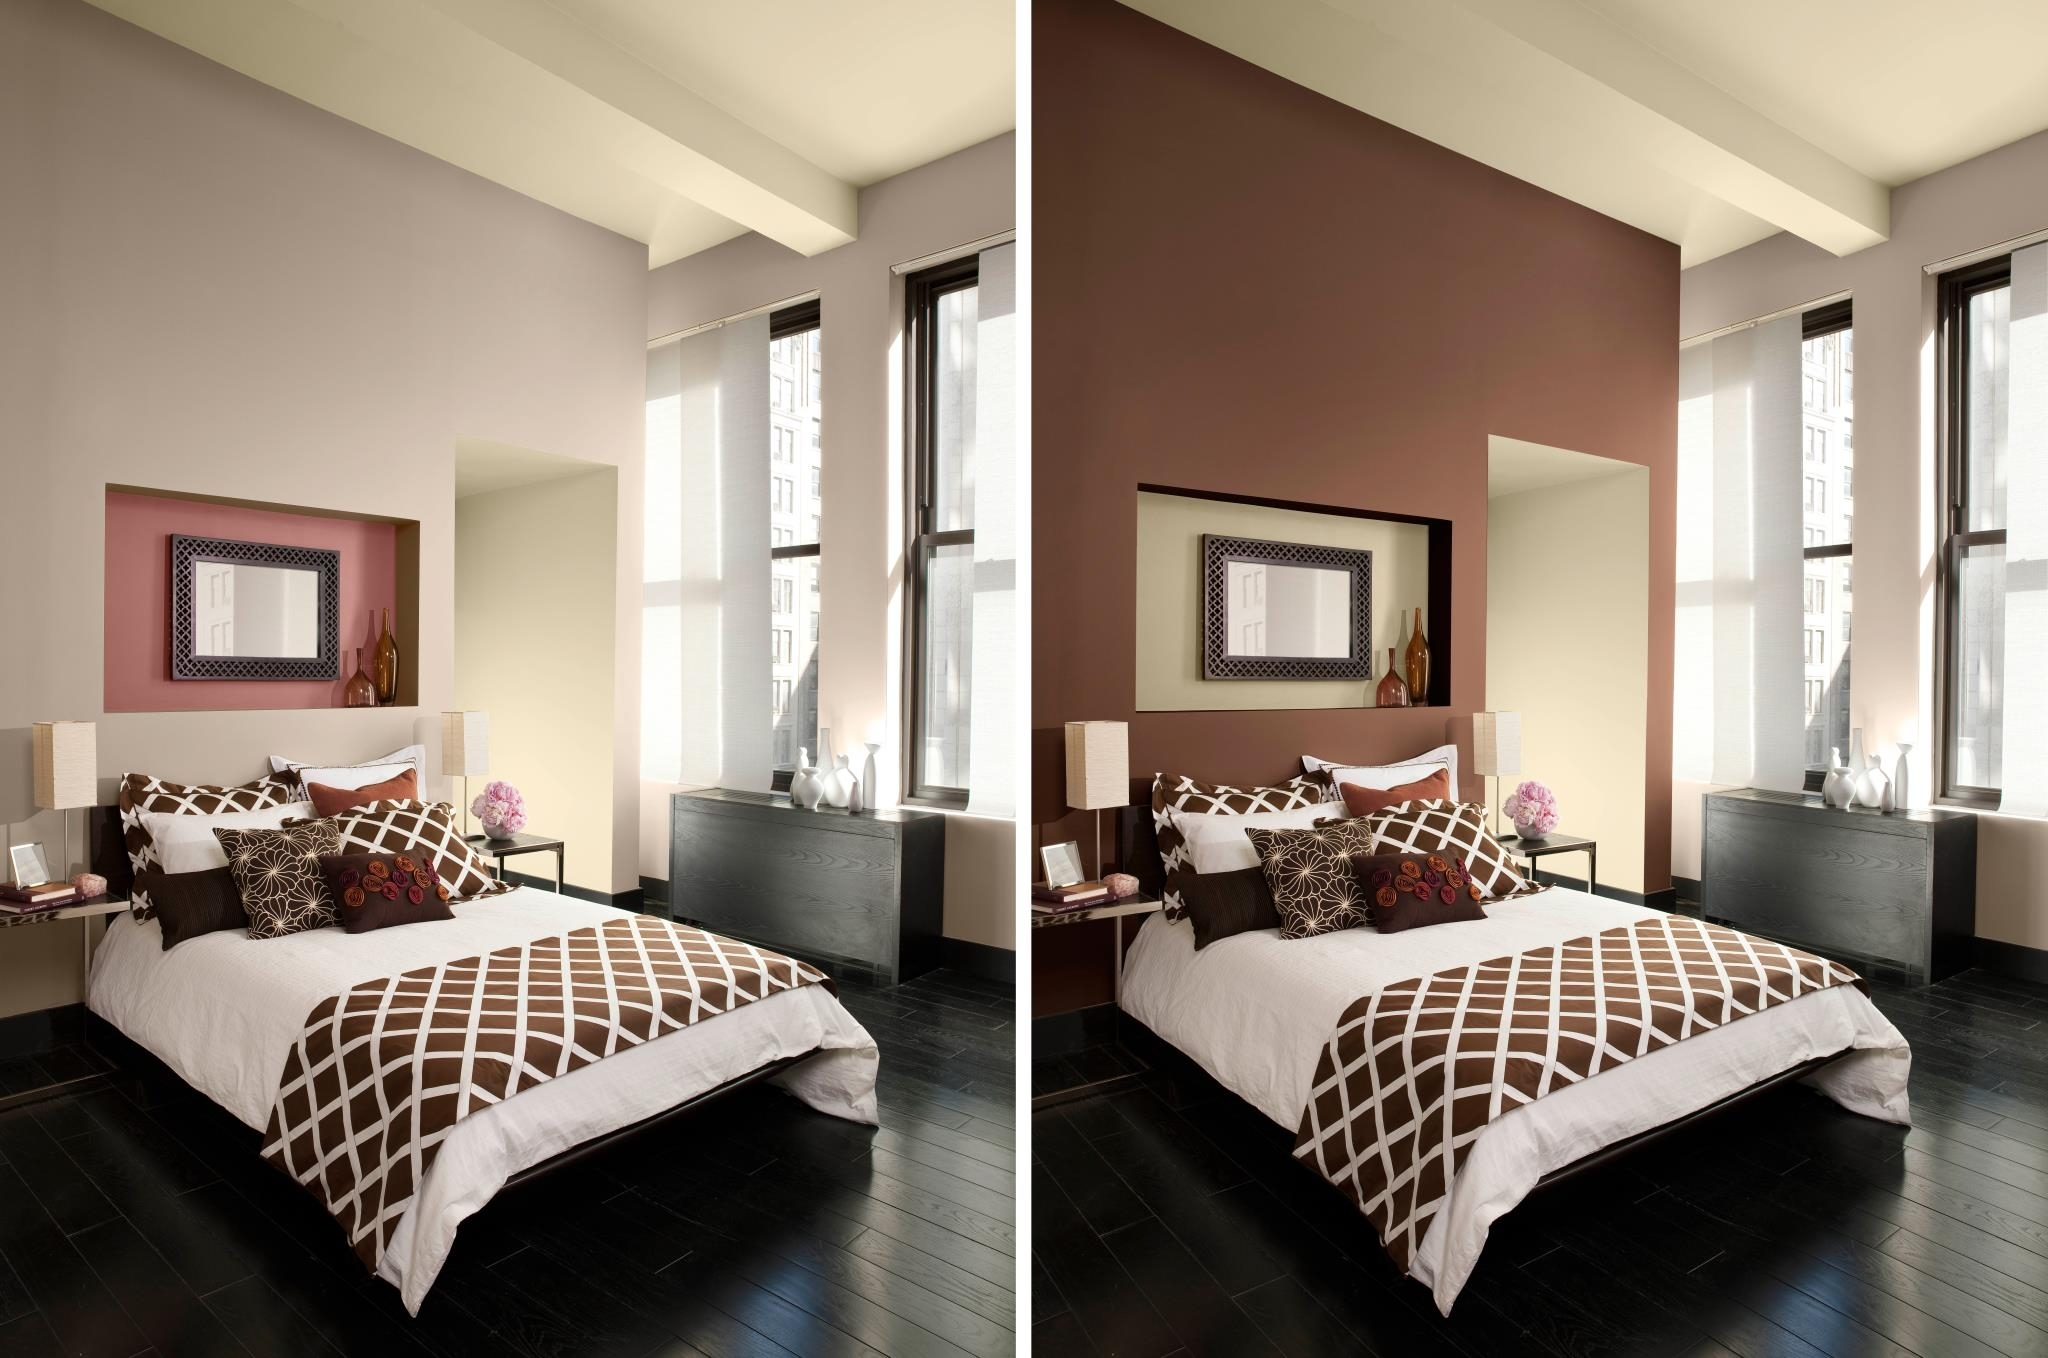 Emphasis On The Accent Wall | Harry Stearns Intended For Most Recent Wall Accents Colors For Bedrooms (View 10 of 15)